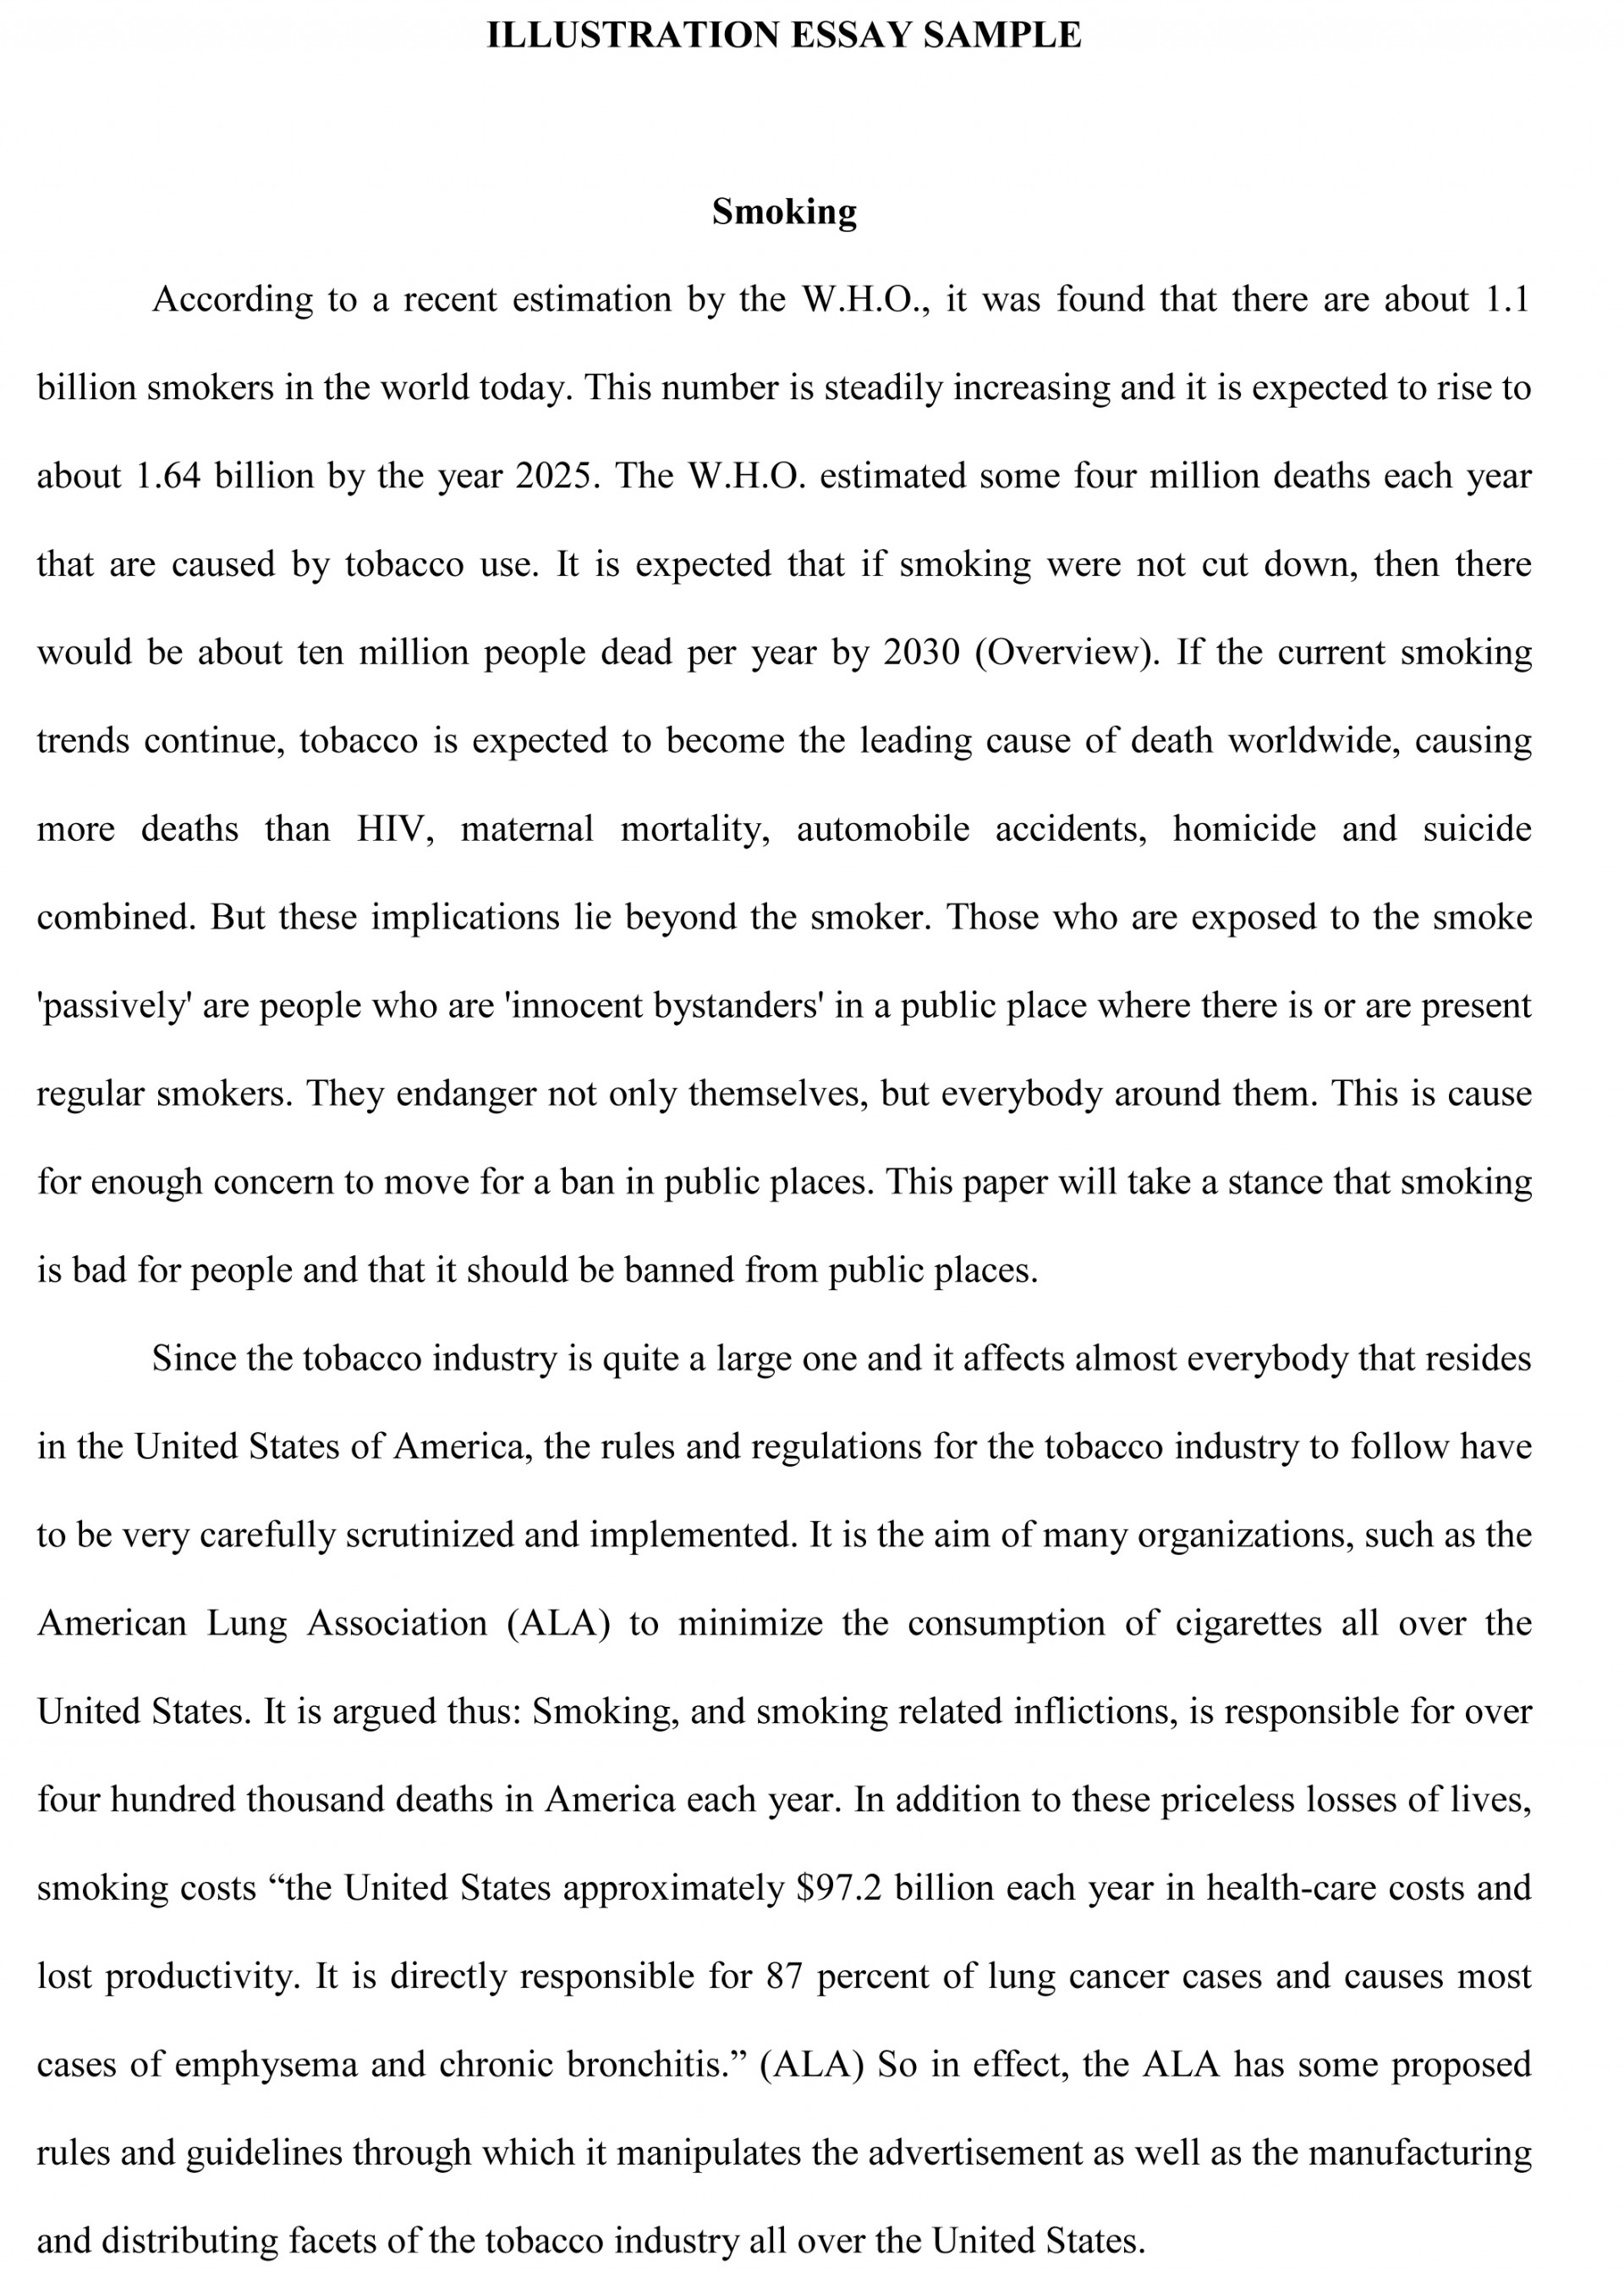 011 Essay Example Informative Introduction Examples Illustration Sample Frightening Paragraph 1920